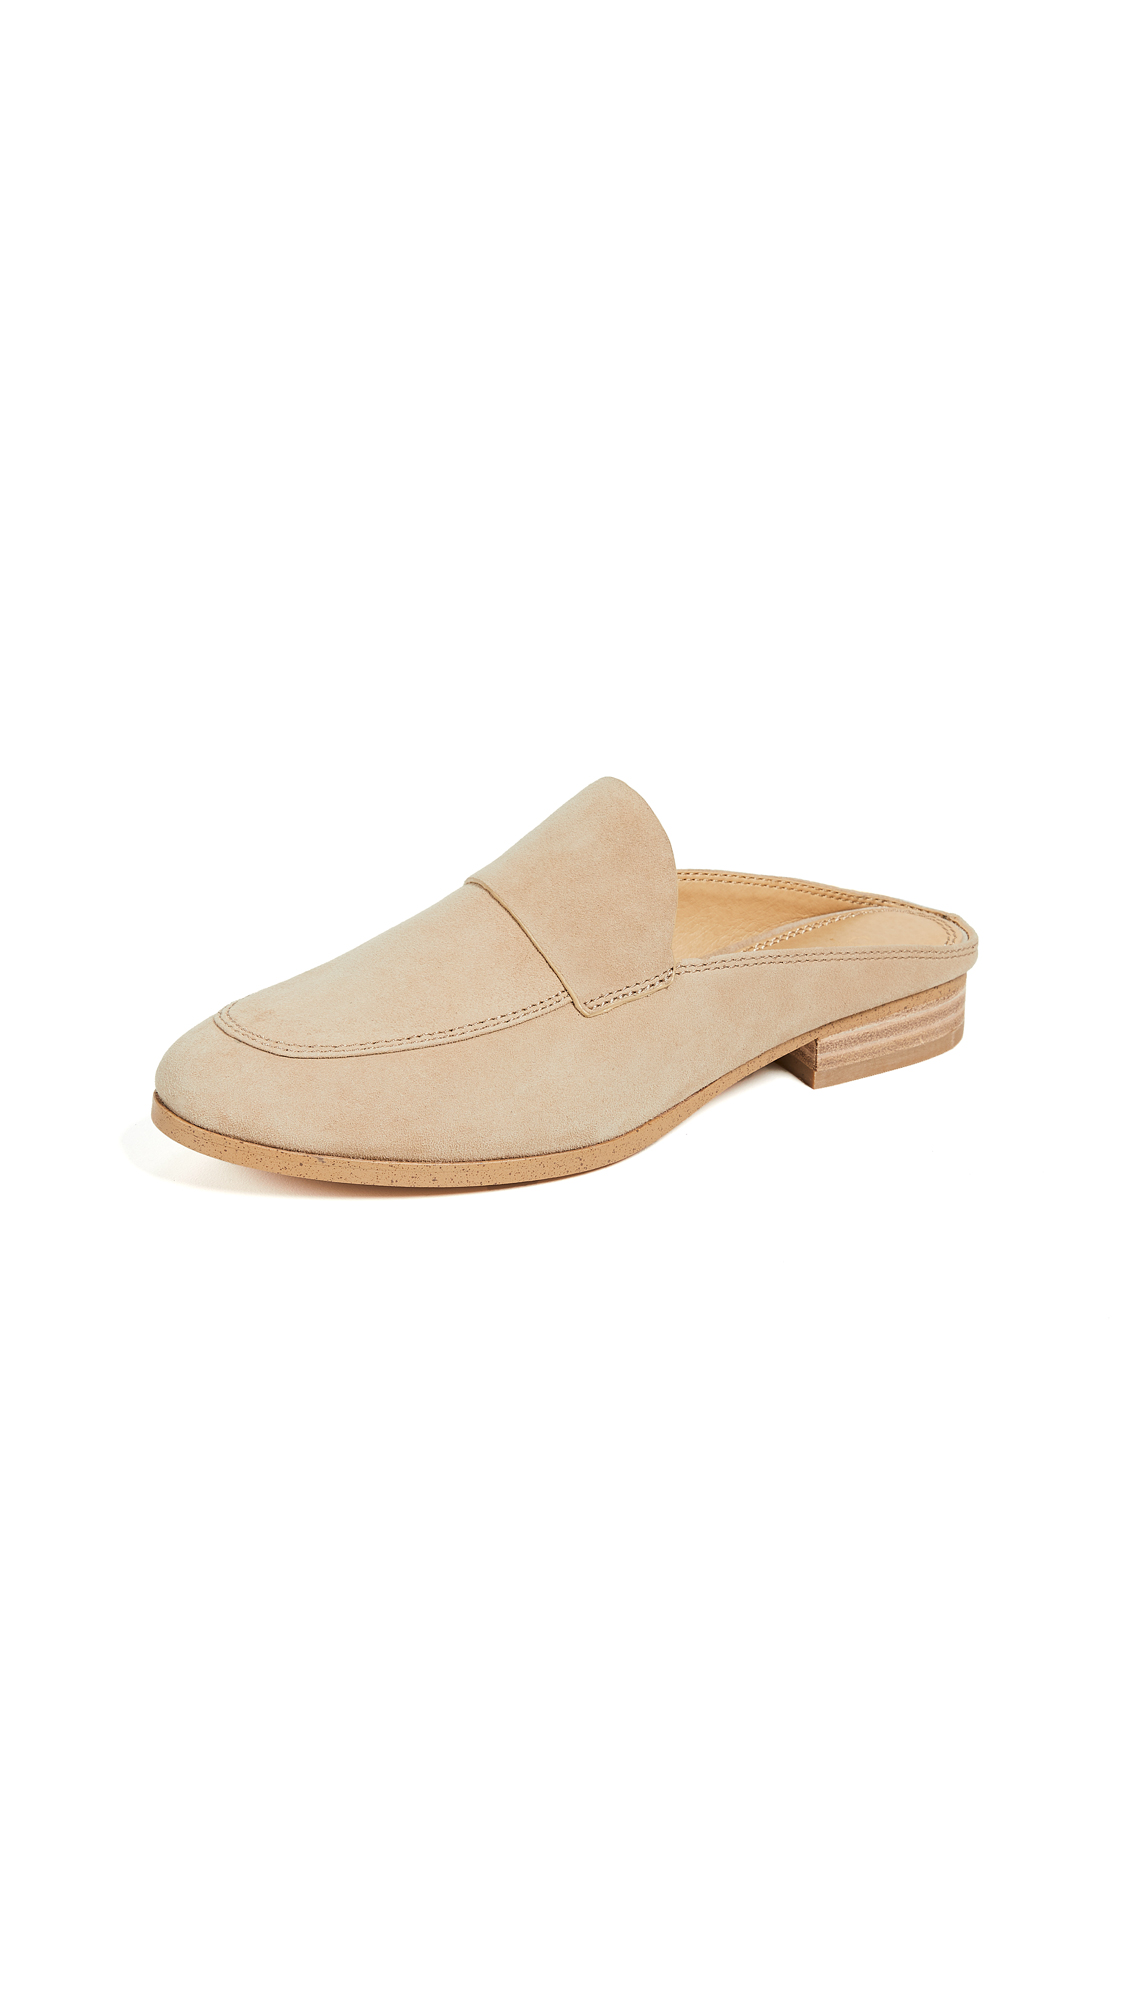 NIMA LOAFER MULE